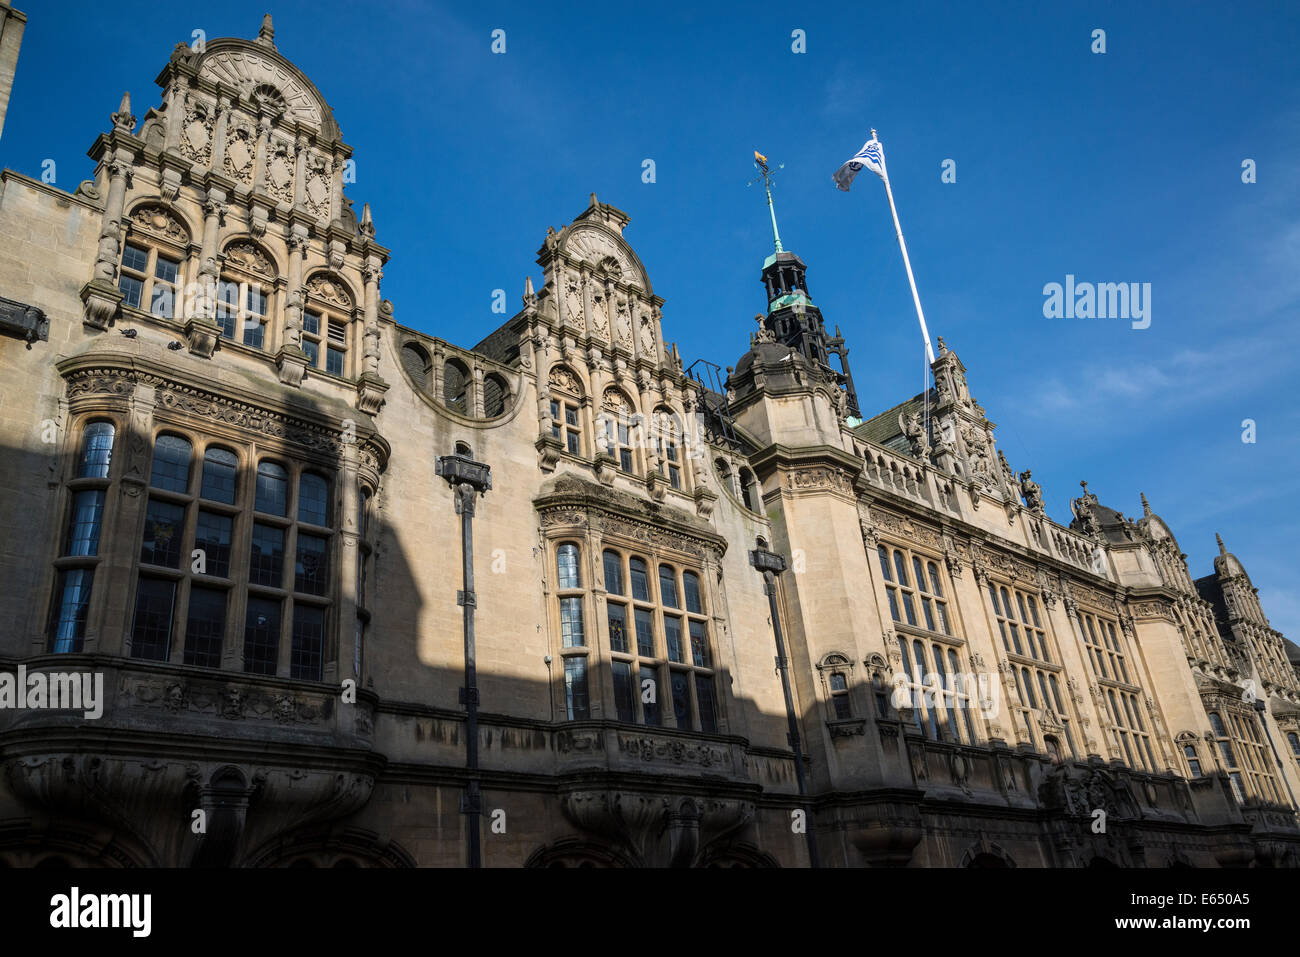 Town Hall, St Aldate's Street, Oxford, England, UK - Stock Image